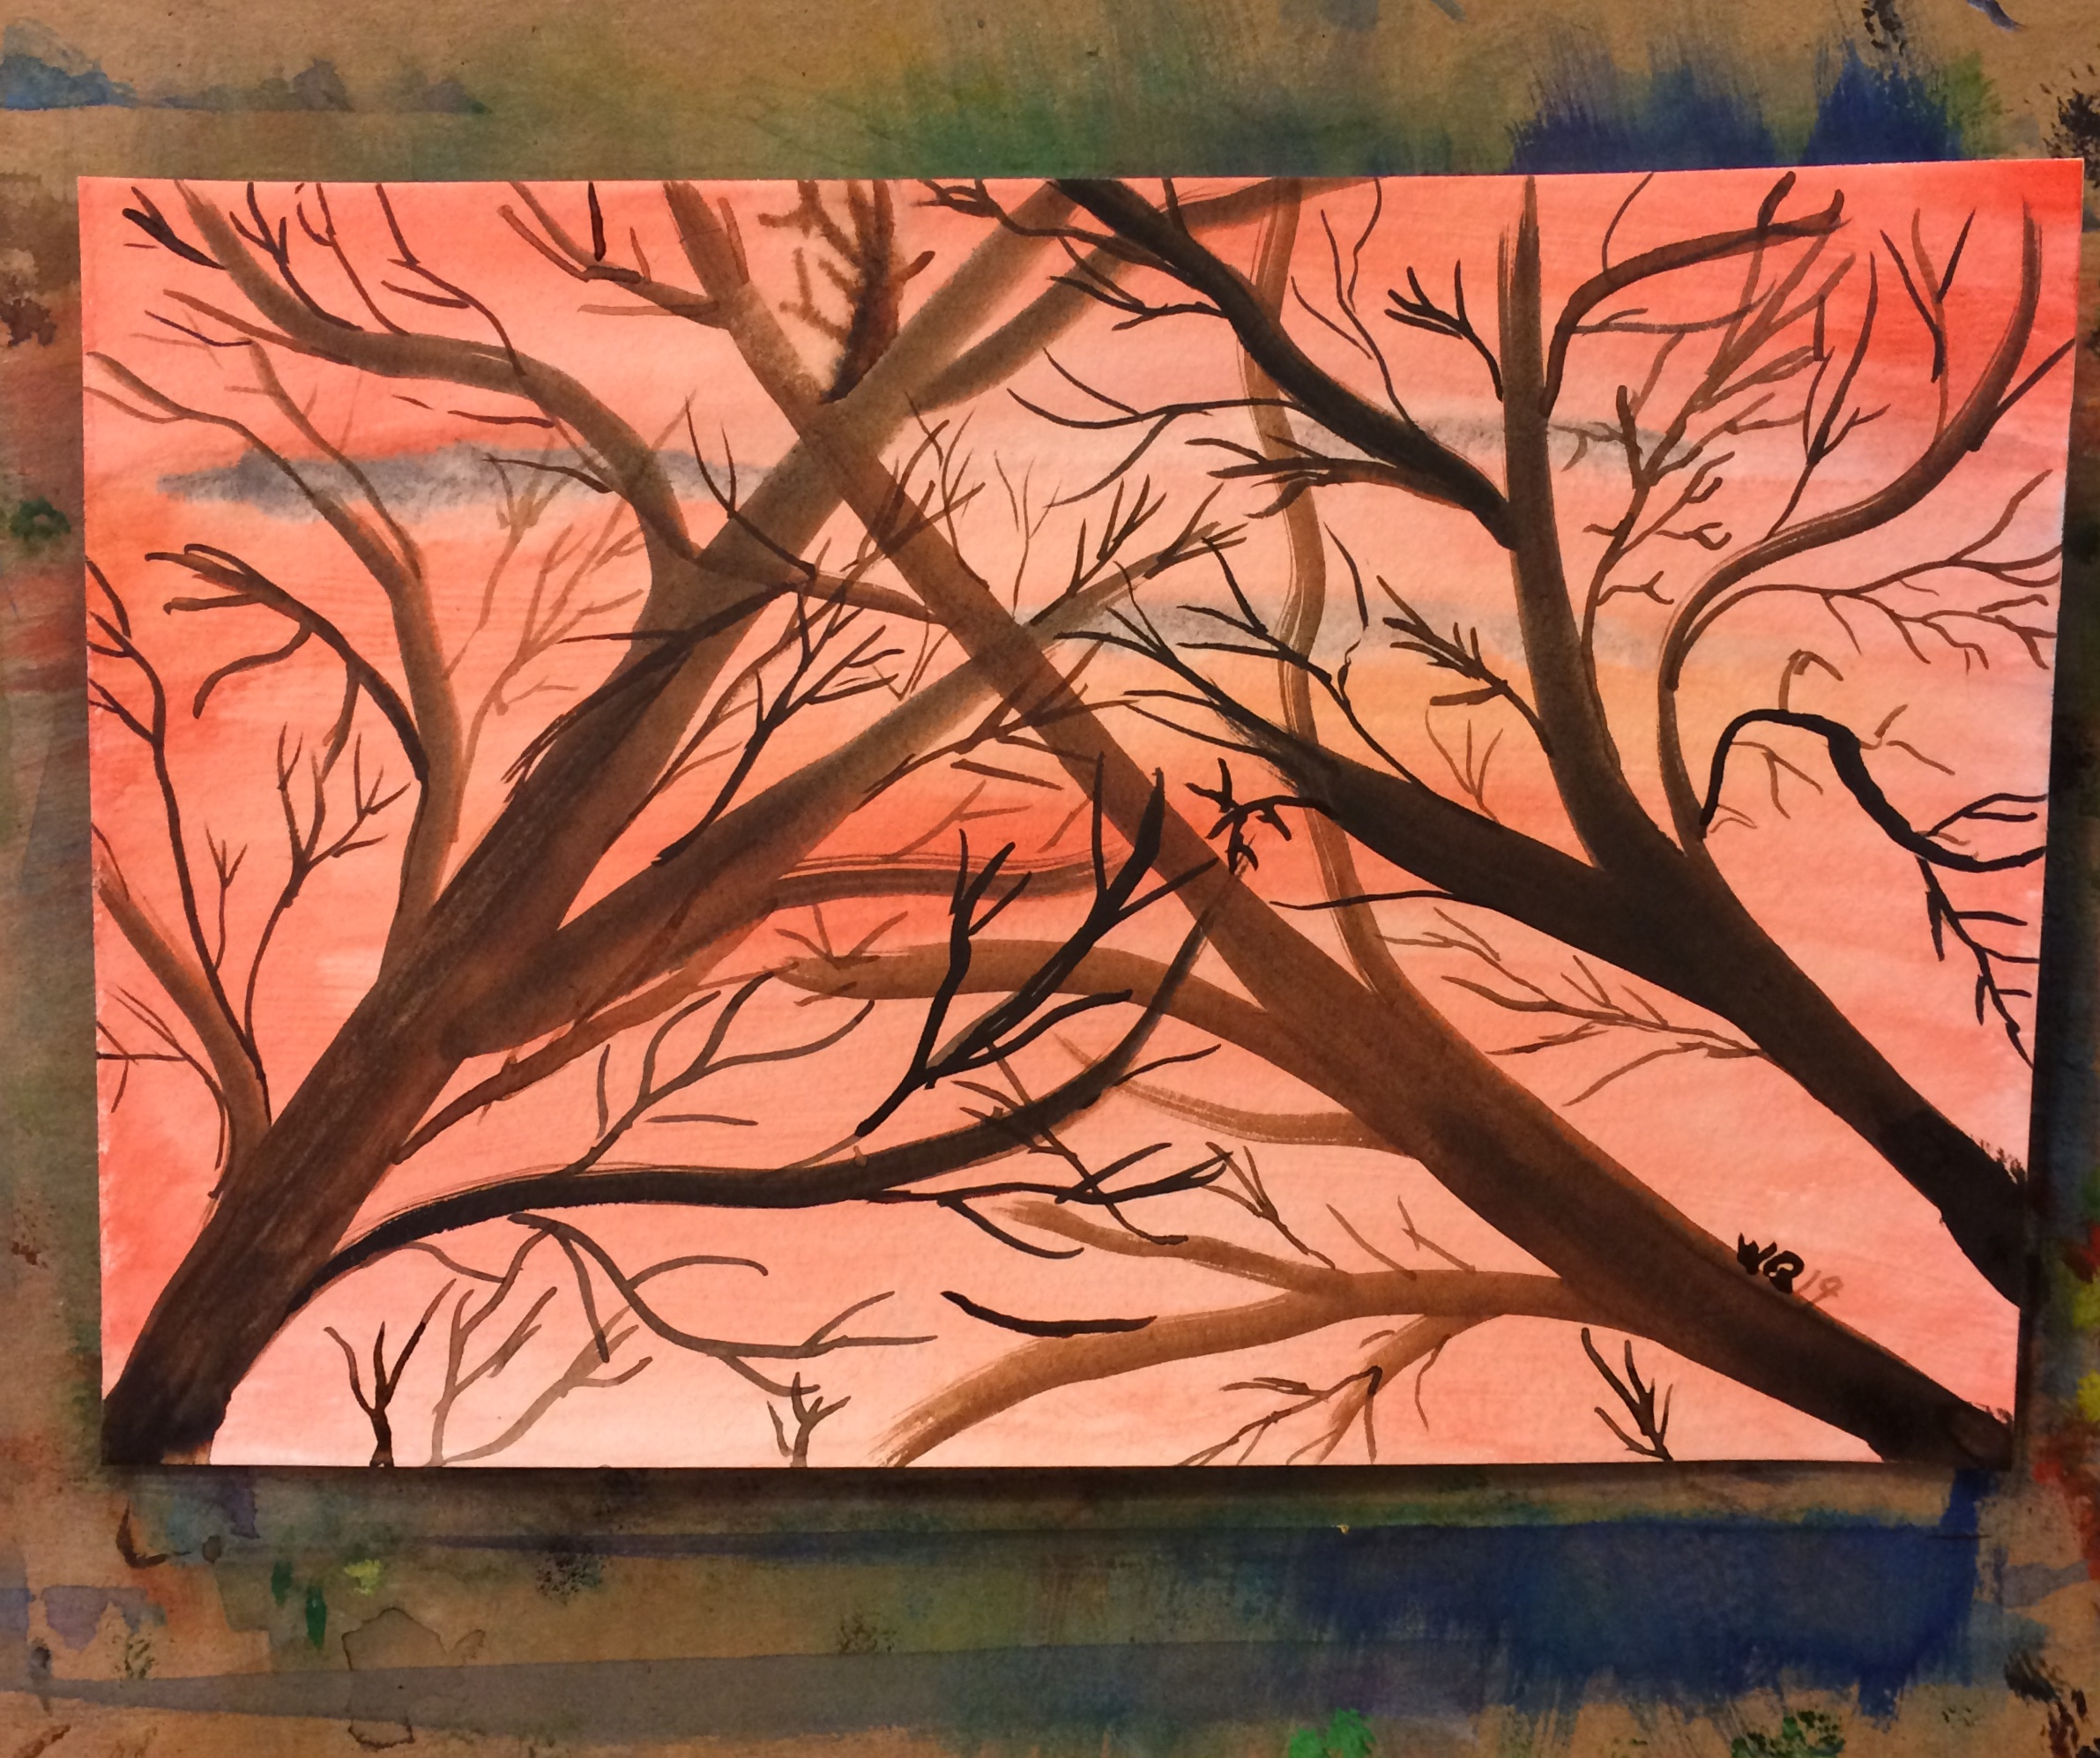 watercolour of red sunset with tree branches in front filling the page.